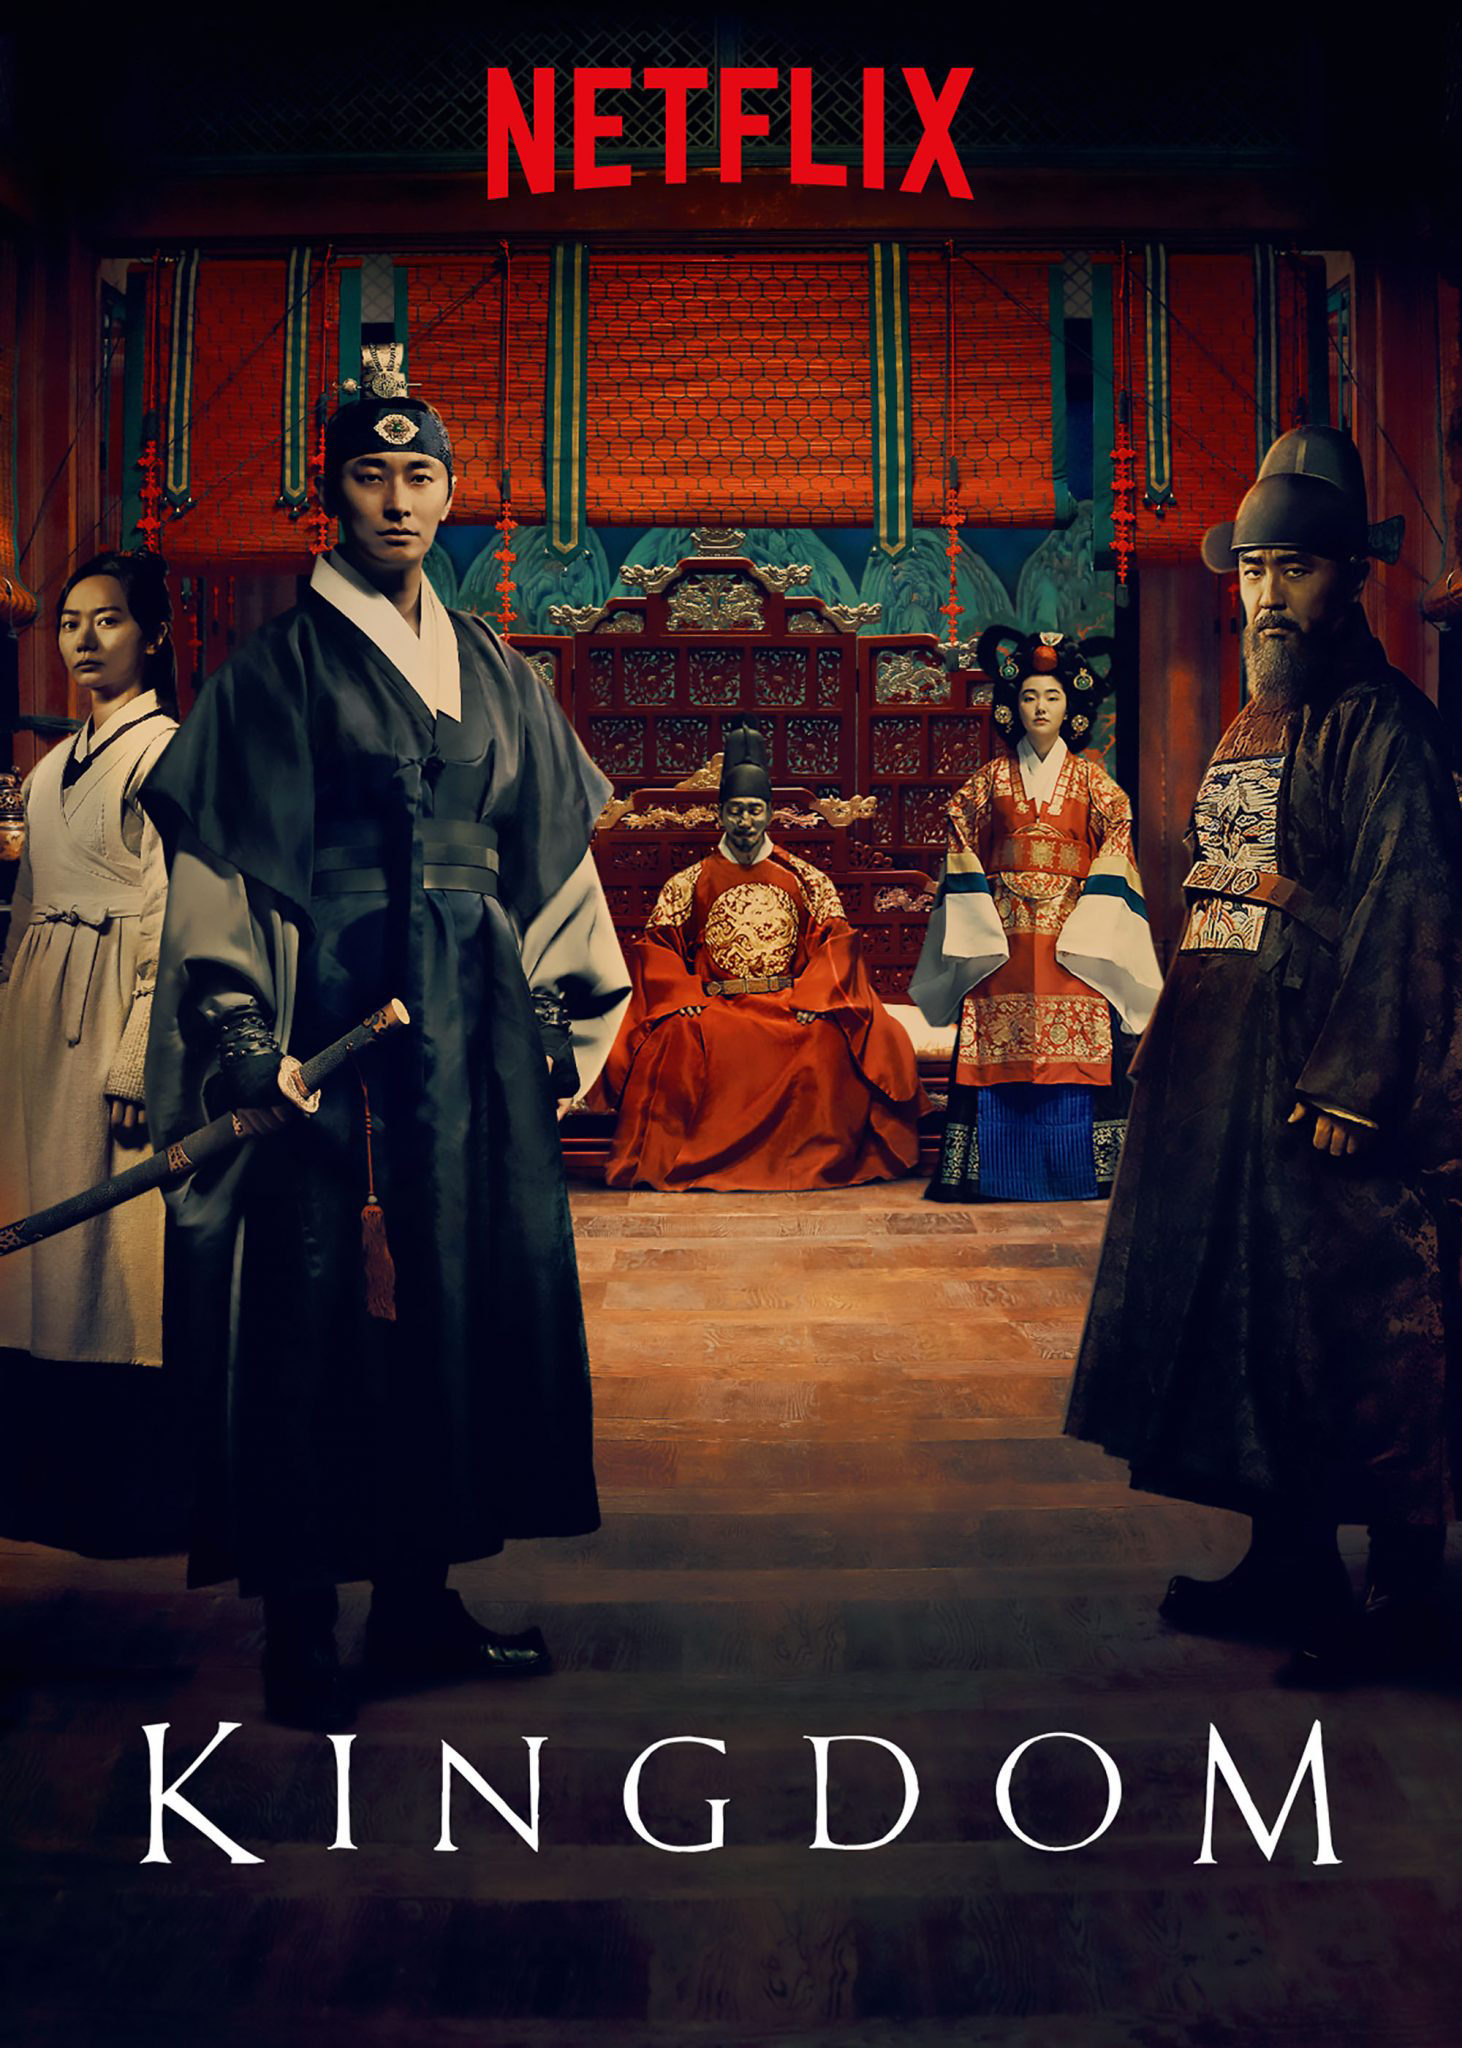 Kingdom 2019 Tv Series Netflix Kingdom Kami No Kuni Wiki Fandom